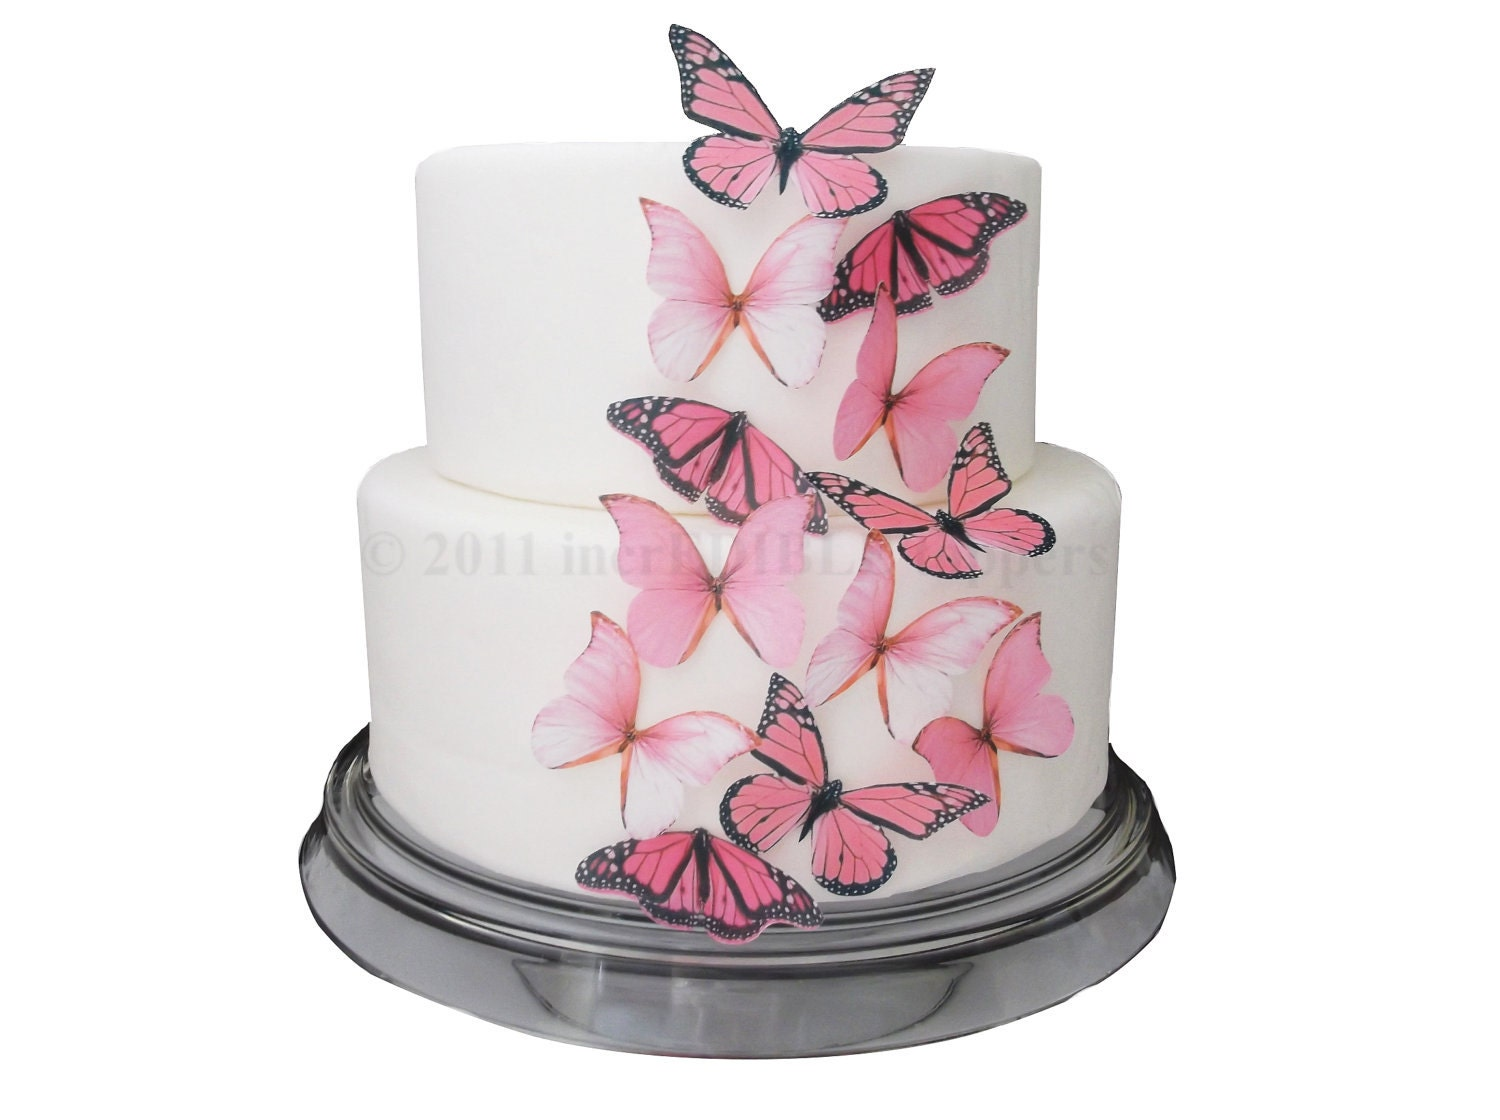 Cake Decoration Butterfly : CAKE DECORATIONS Edible Butterflies 12 Large by incrEDIBLEtoppers